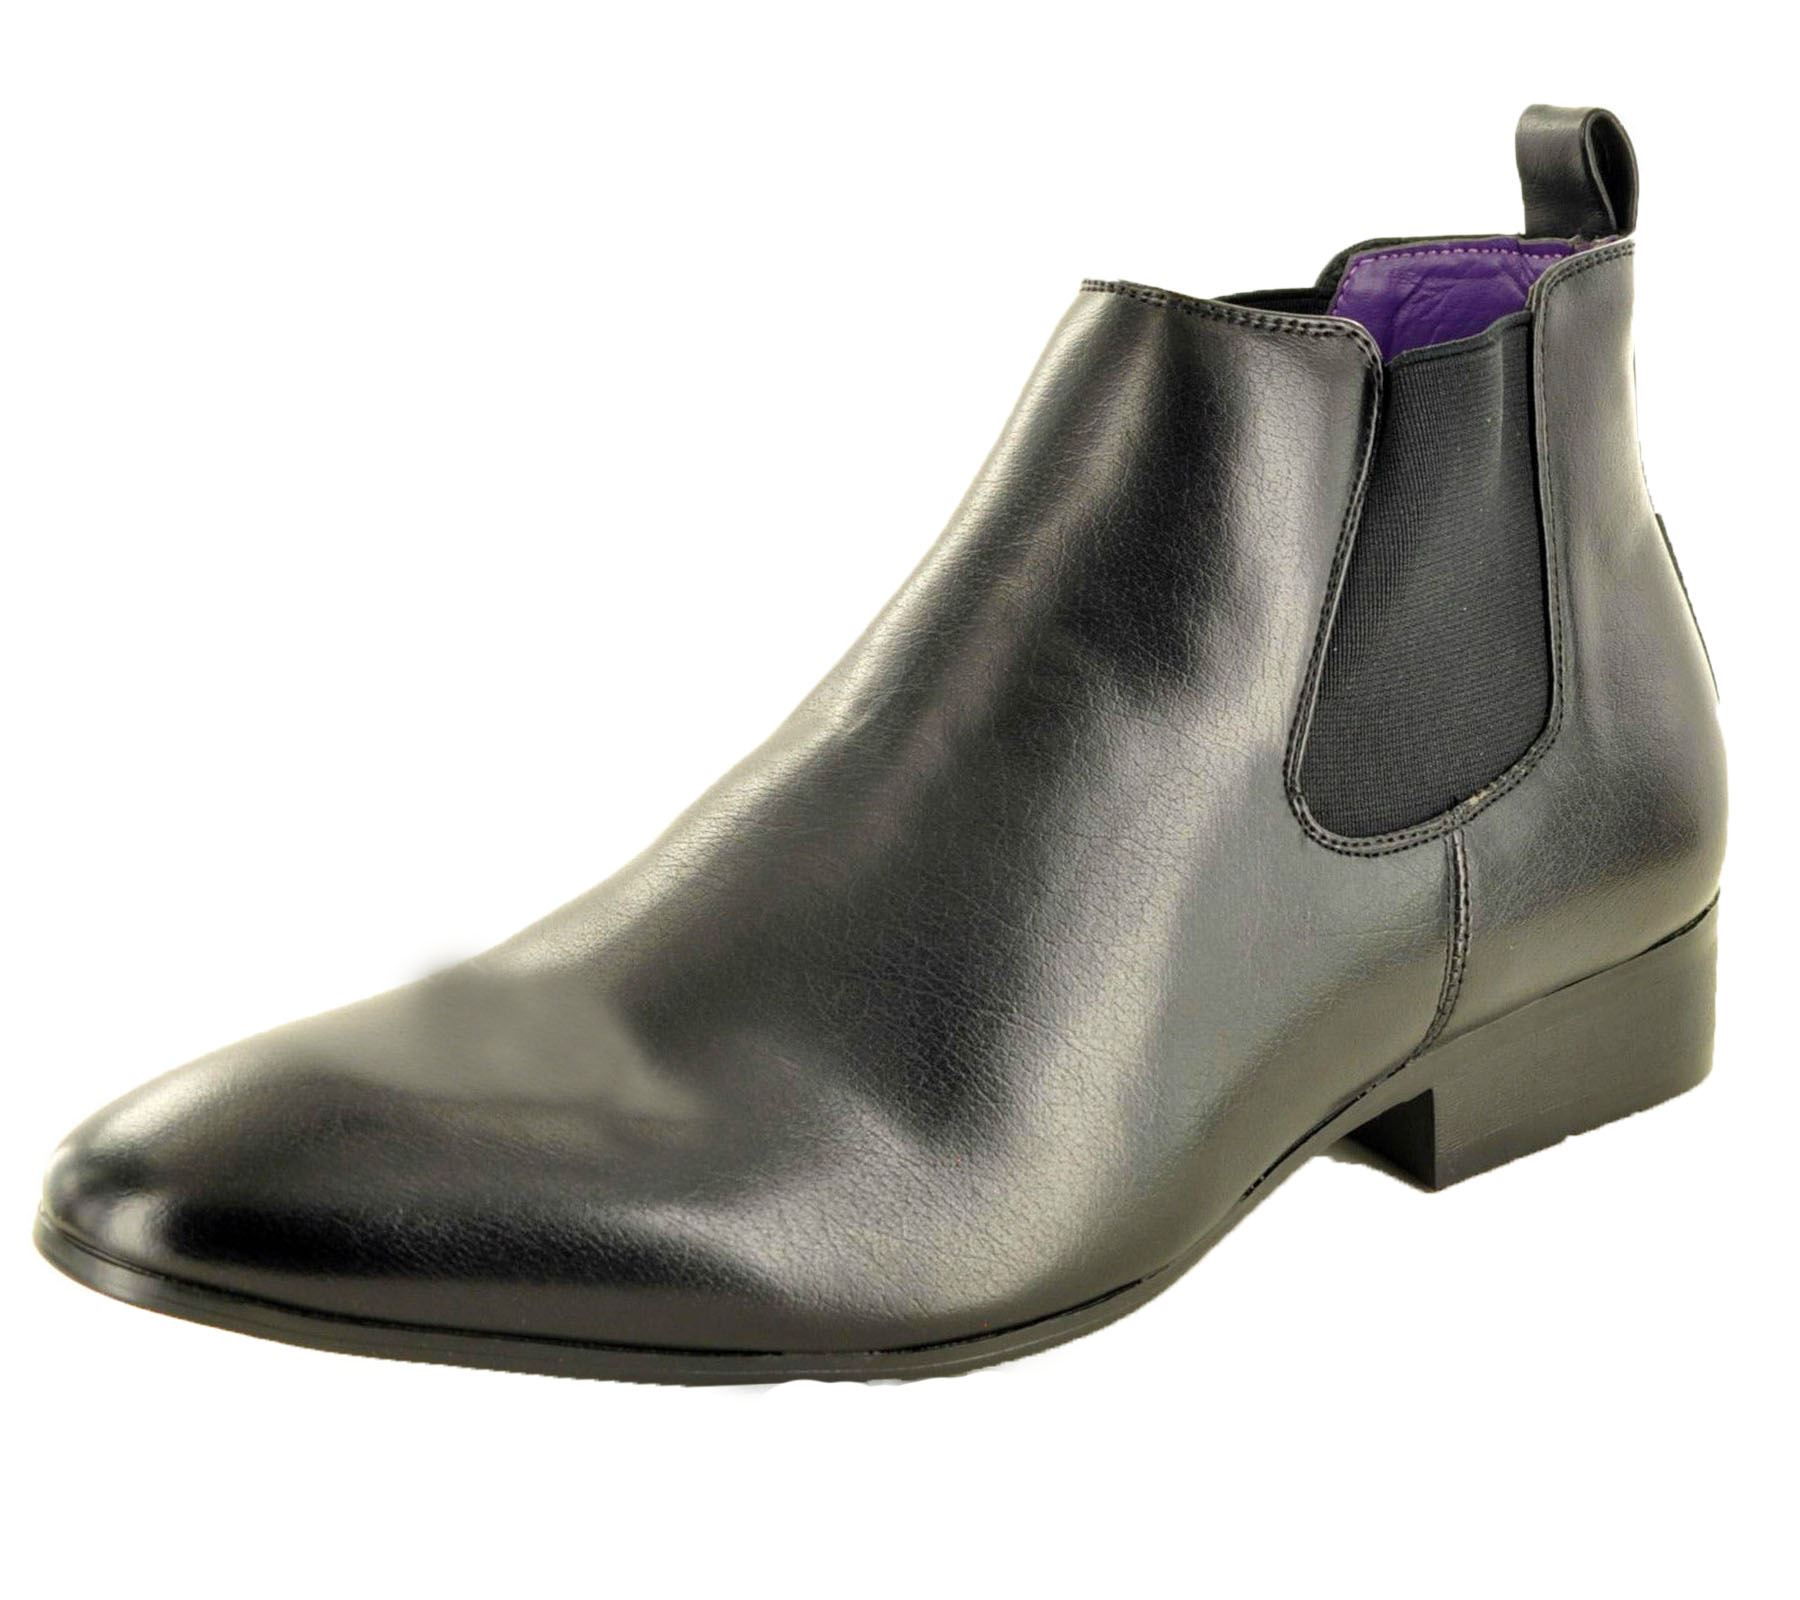 Mens-Chelsea-Boots-High-Top-Gusset-Synthetic-Leather-Shoes thumbnail 6